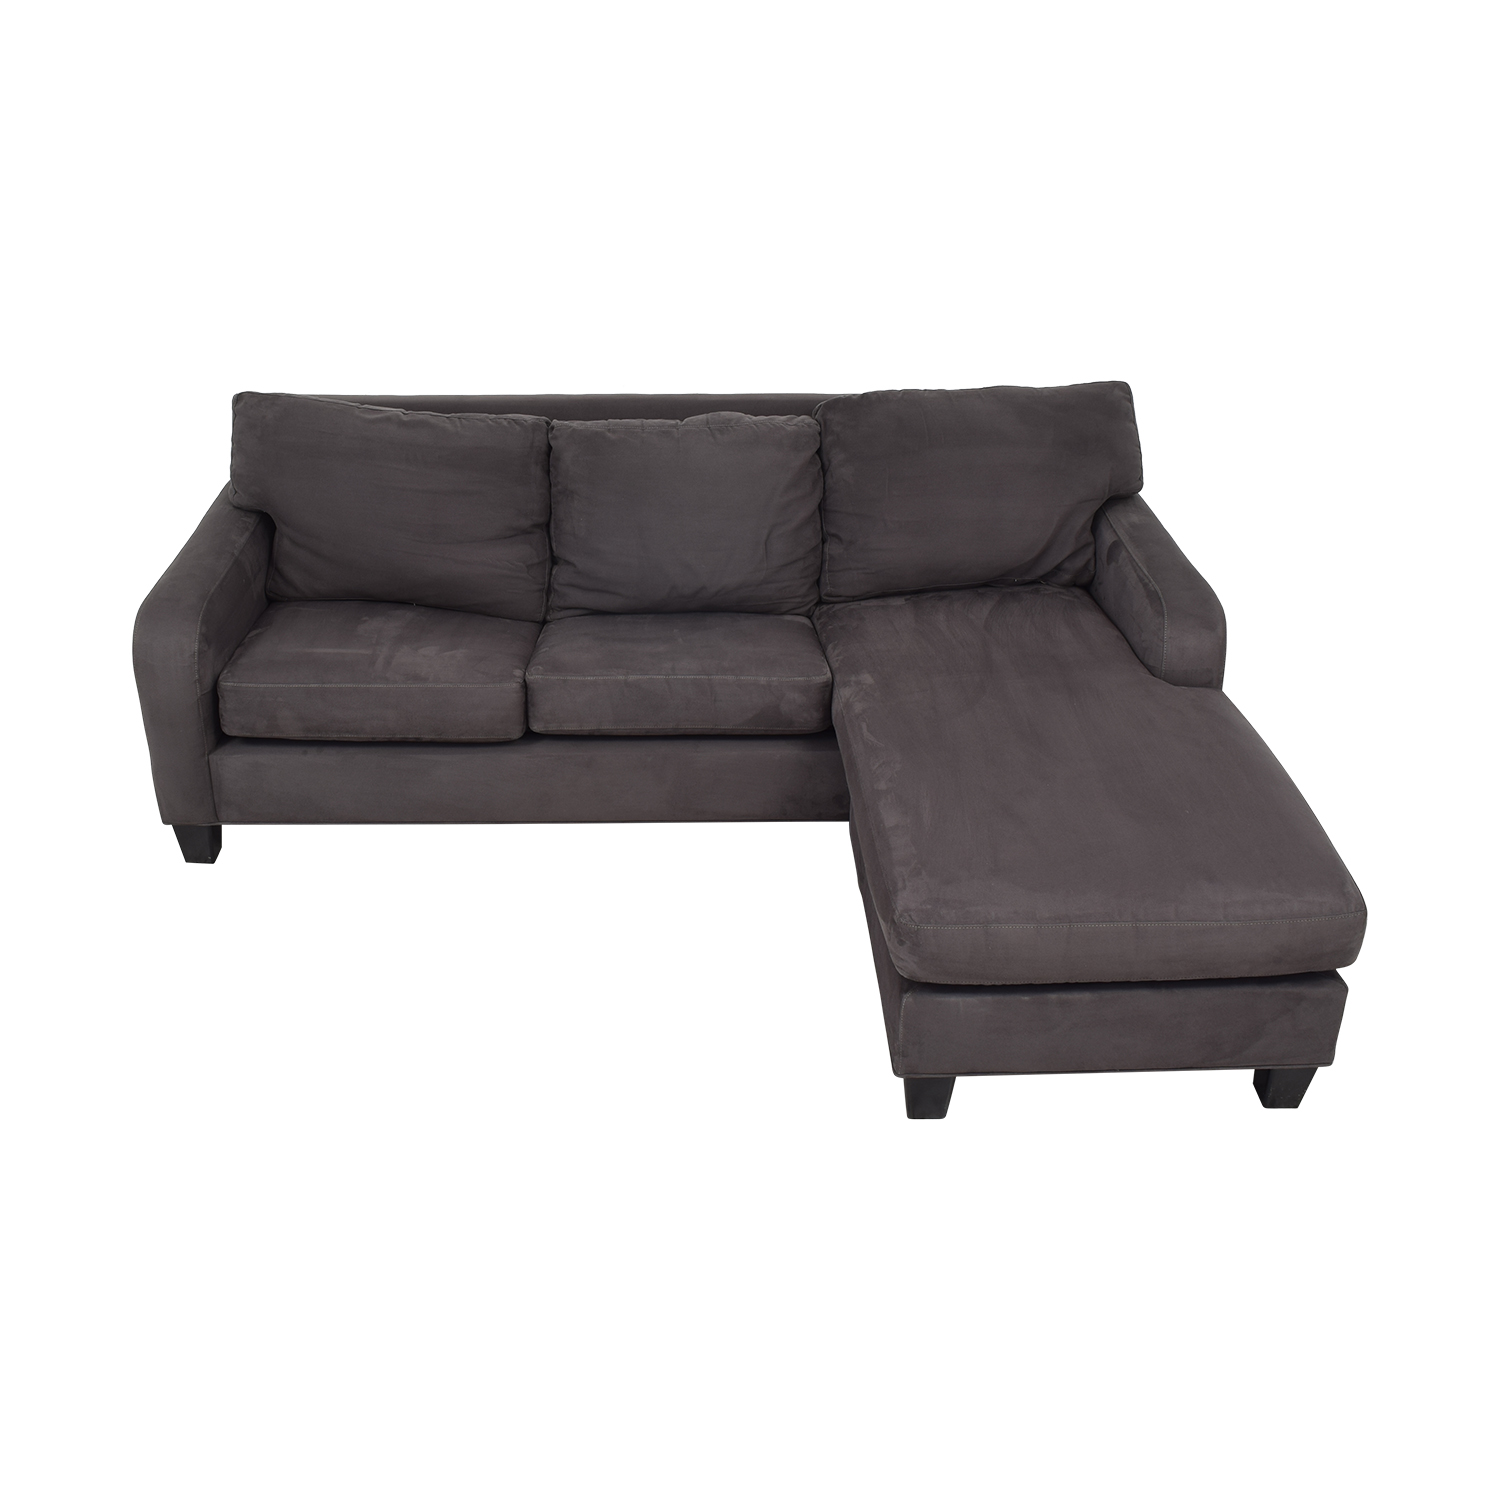 shop Cindy Crawford Home Chaise Sleeper Sofa Cindy Crawford Home Sofas